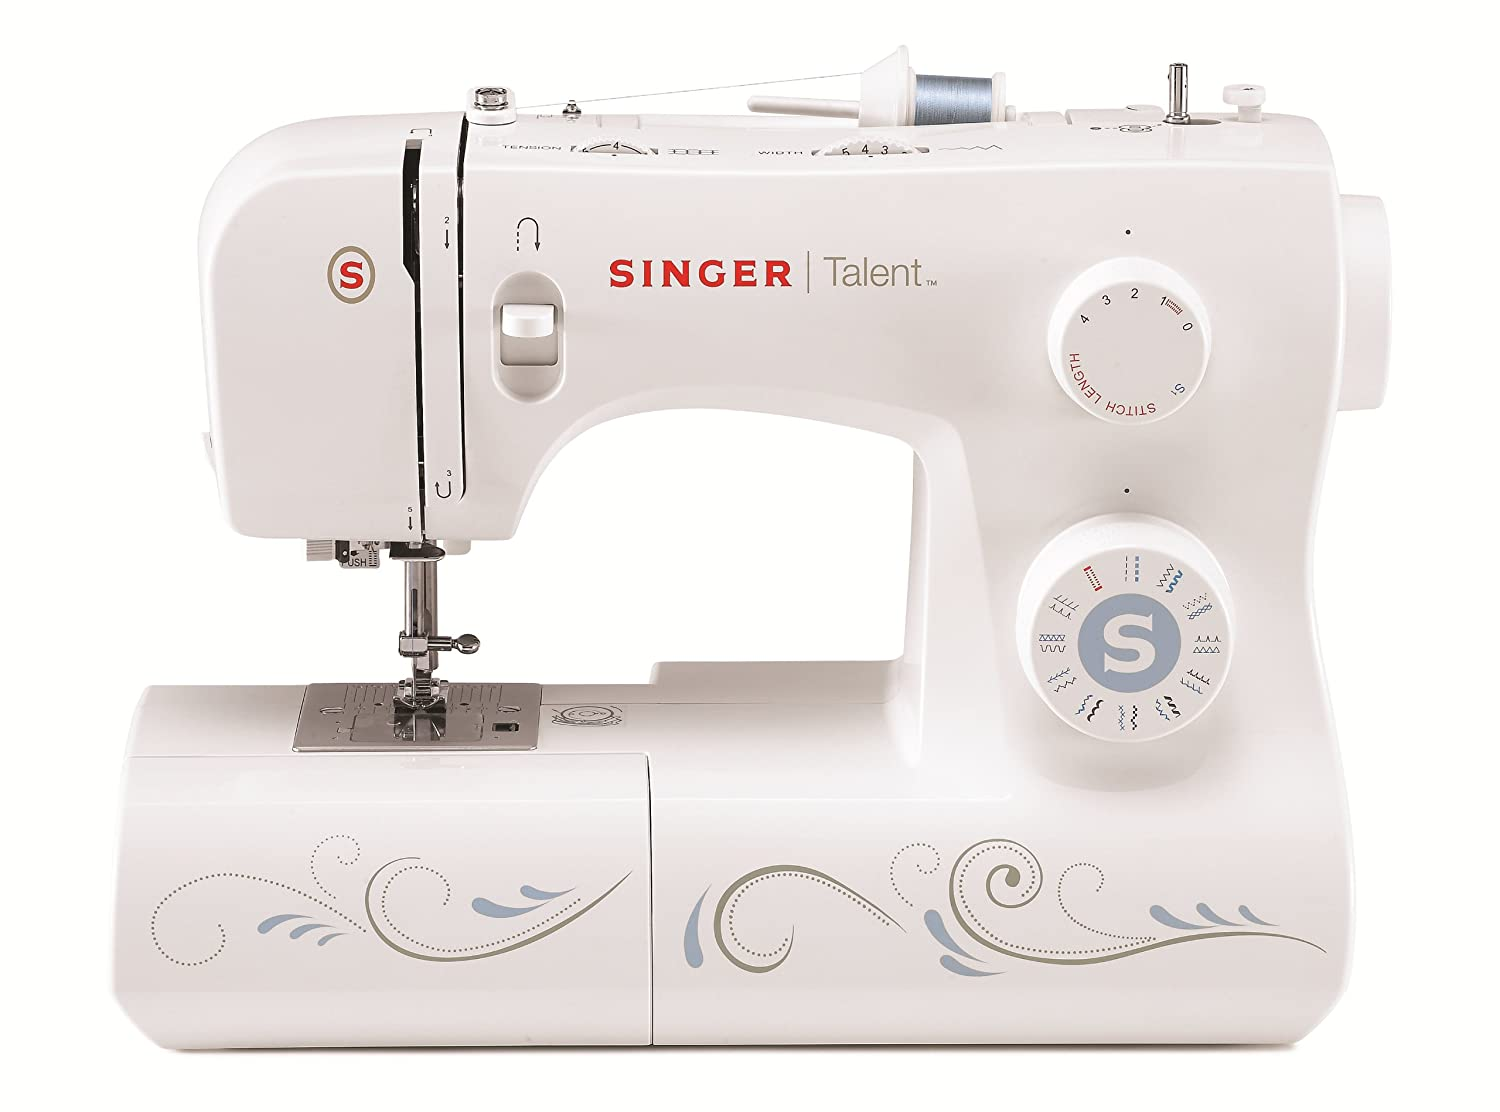 Amazon.com: SINGER | Talent 3323S Portable Sewing Machine including 23  Built-In Stitches, Automatic Needle Threader, Top Drop-in Bobbin and Bonus  Fashion ...